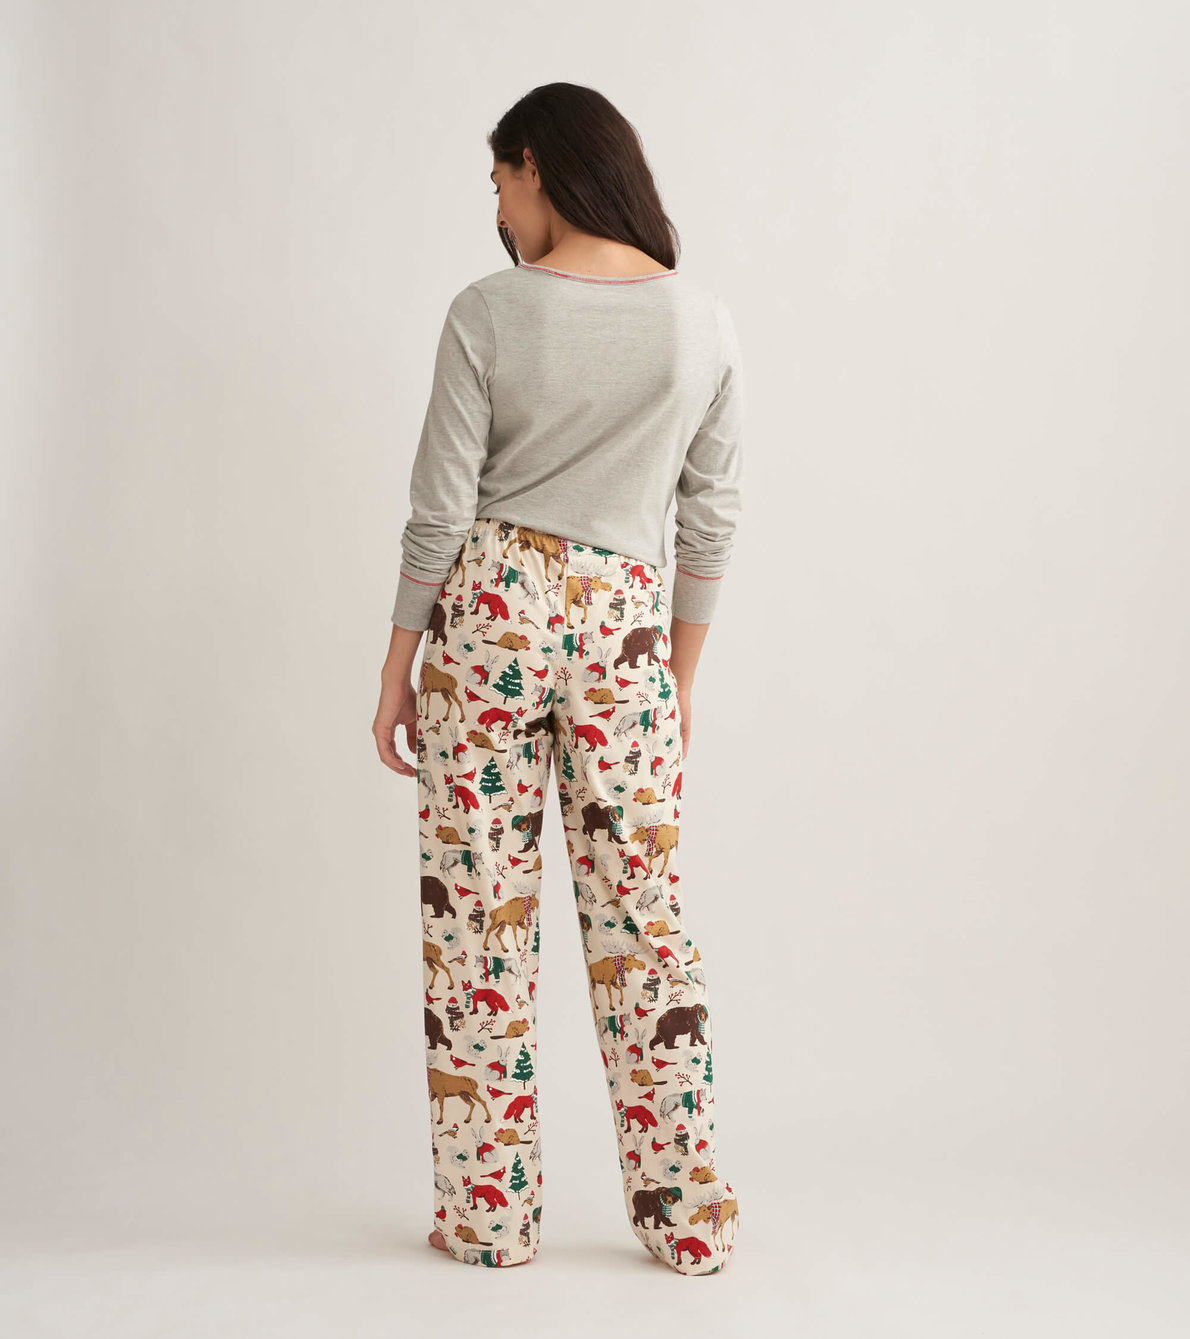 View larger image of Woodland Winter Women's Jersey Pajama Pants